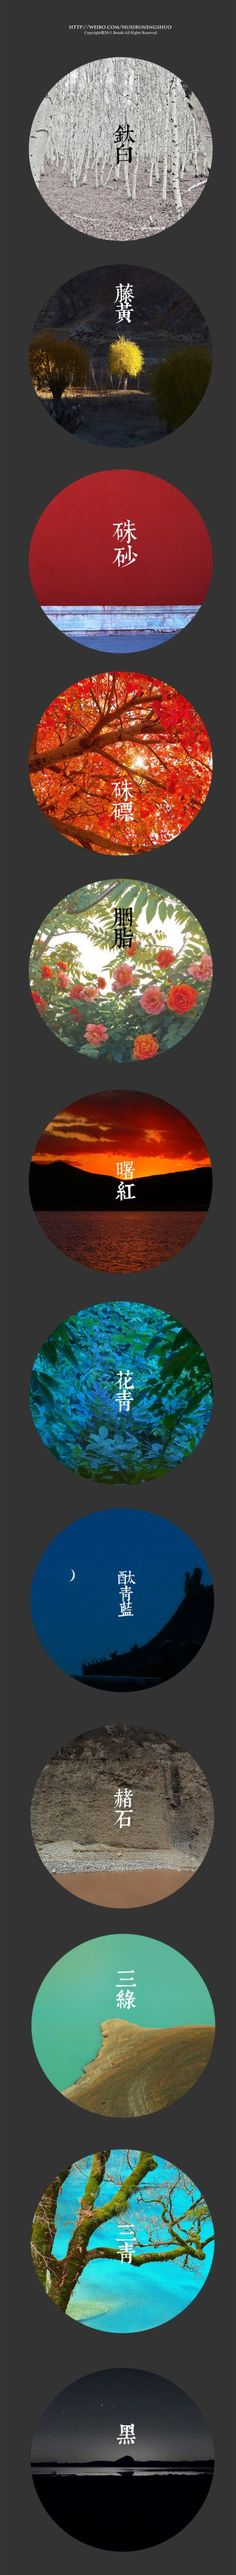 colors (in traditional Chinese painting) with beautiful names: